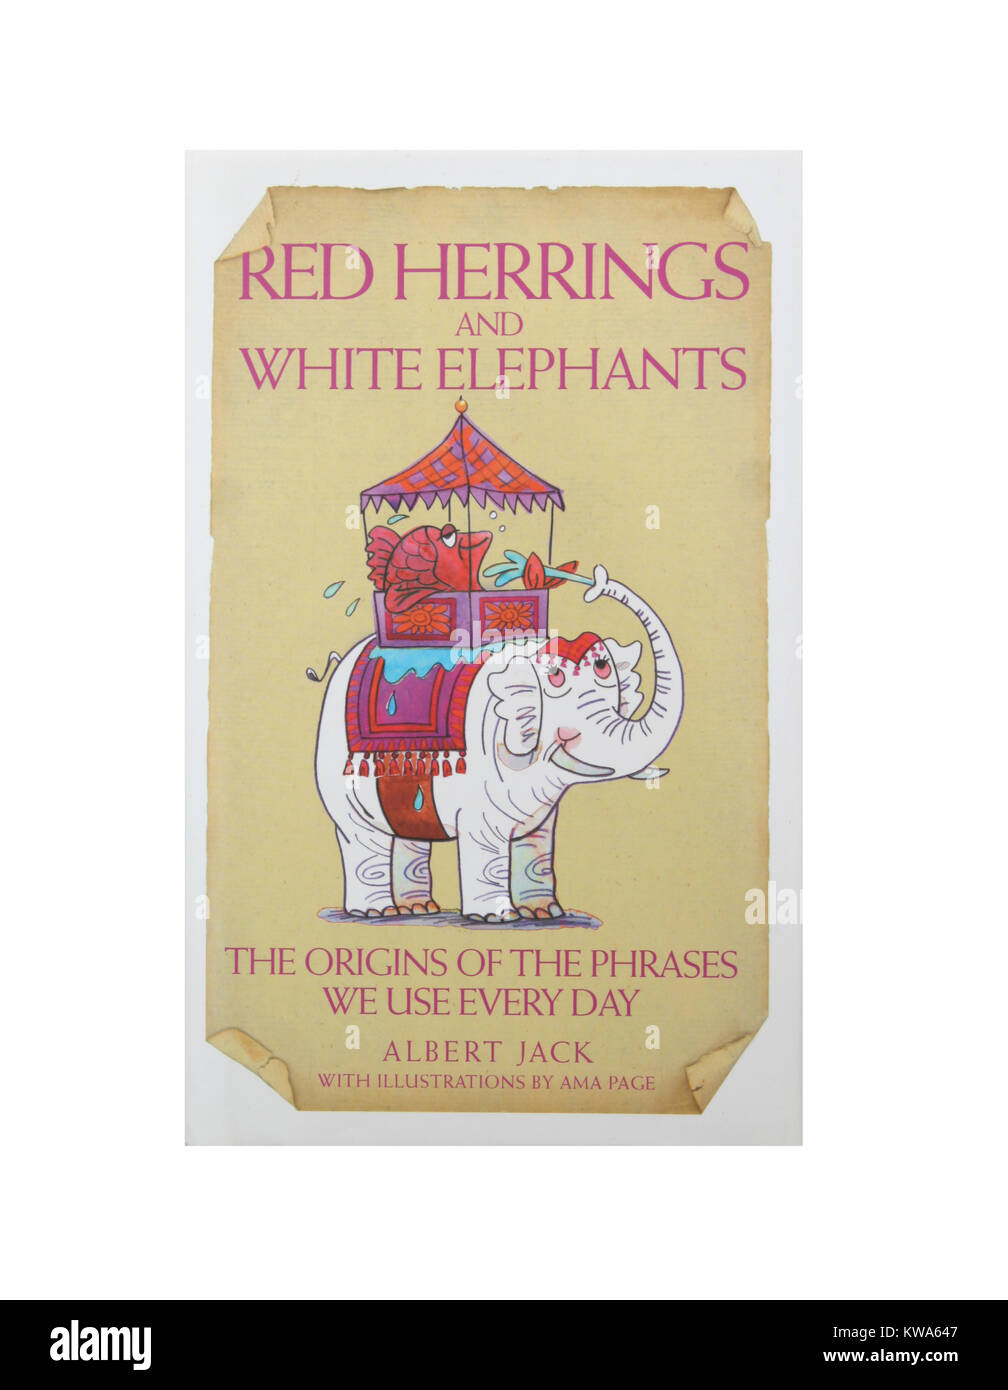 The book, Red Herrings and White Elephants - The origins of the phrases we use every day by Albert Jack. - Stock Image